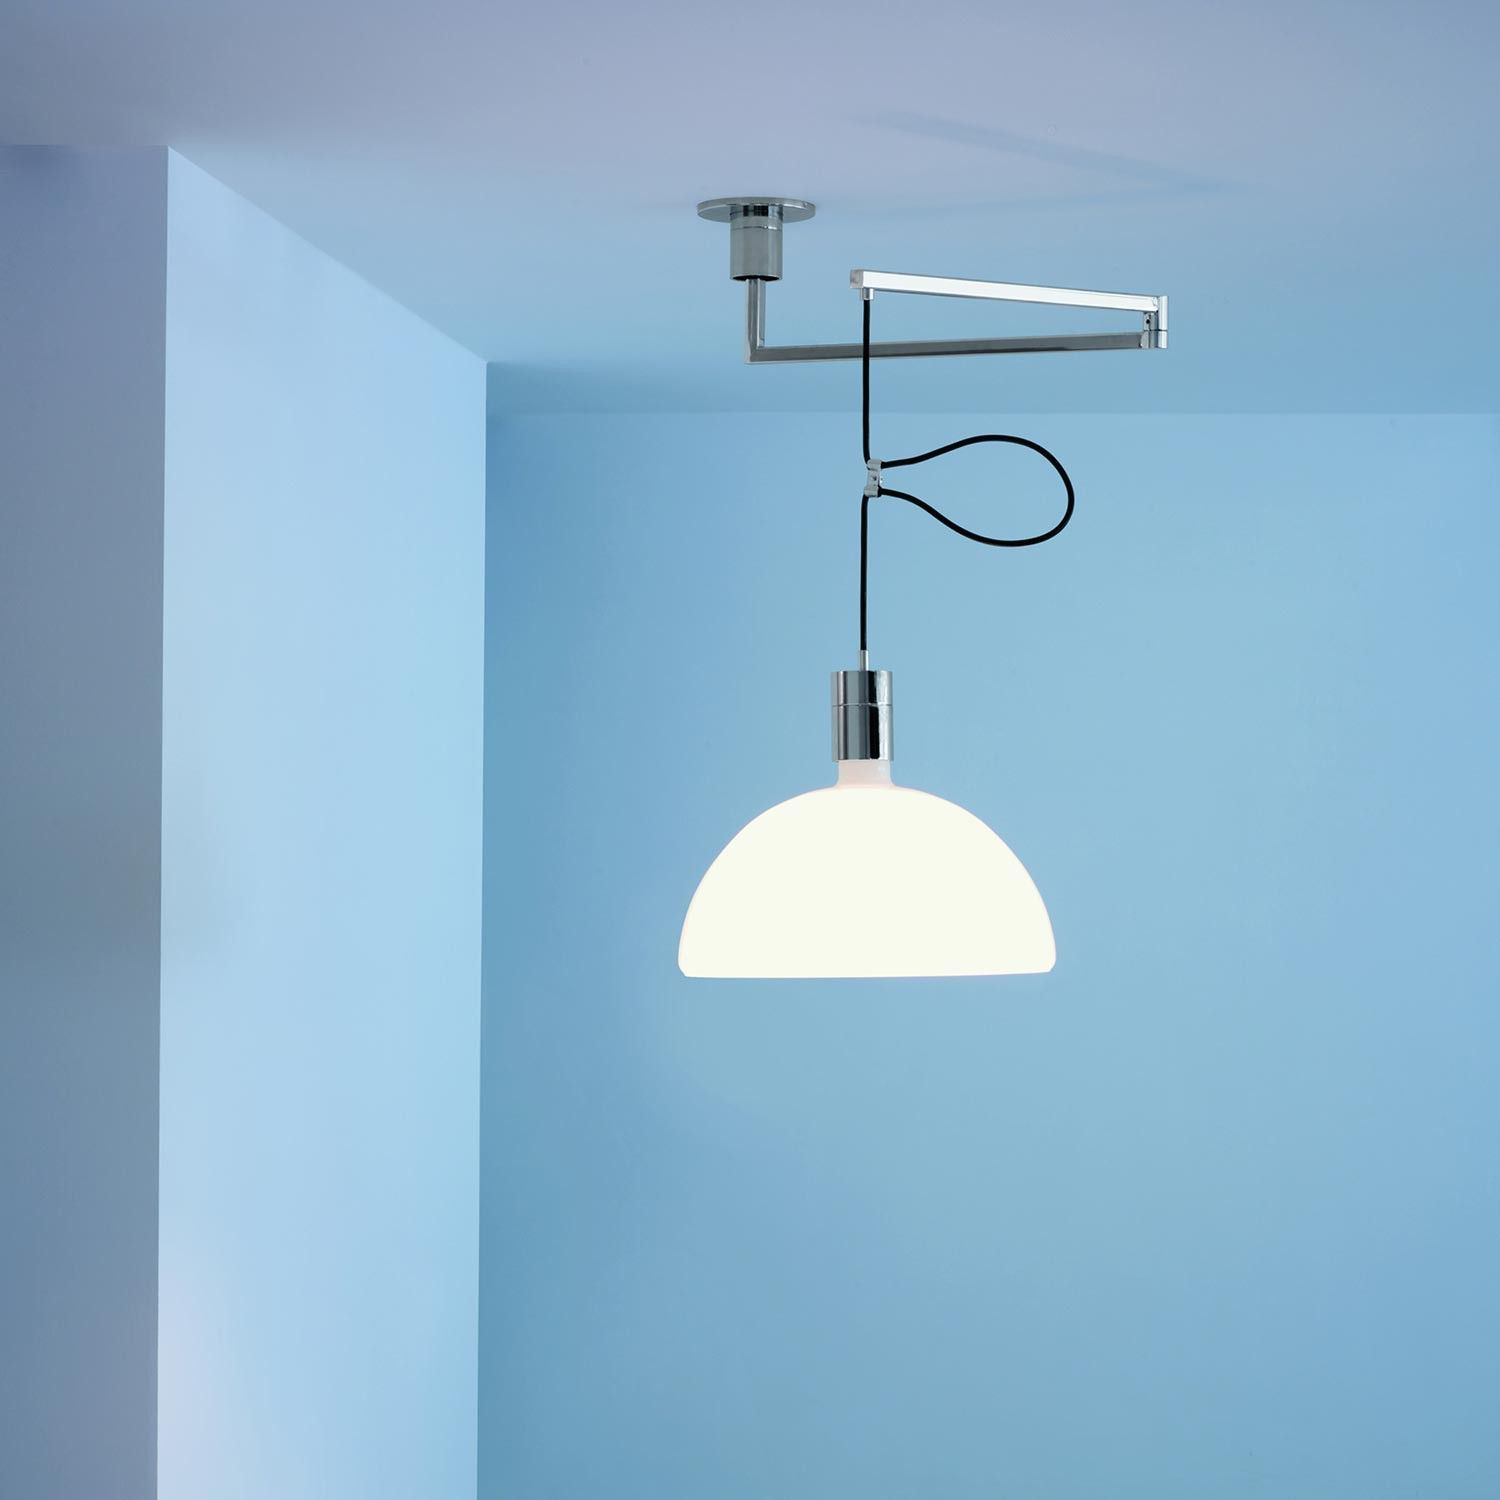 Asc pendant lamp with chromed metal parts cupshaped diffuser in